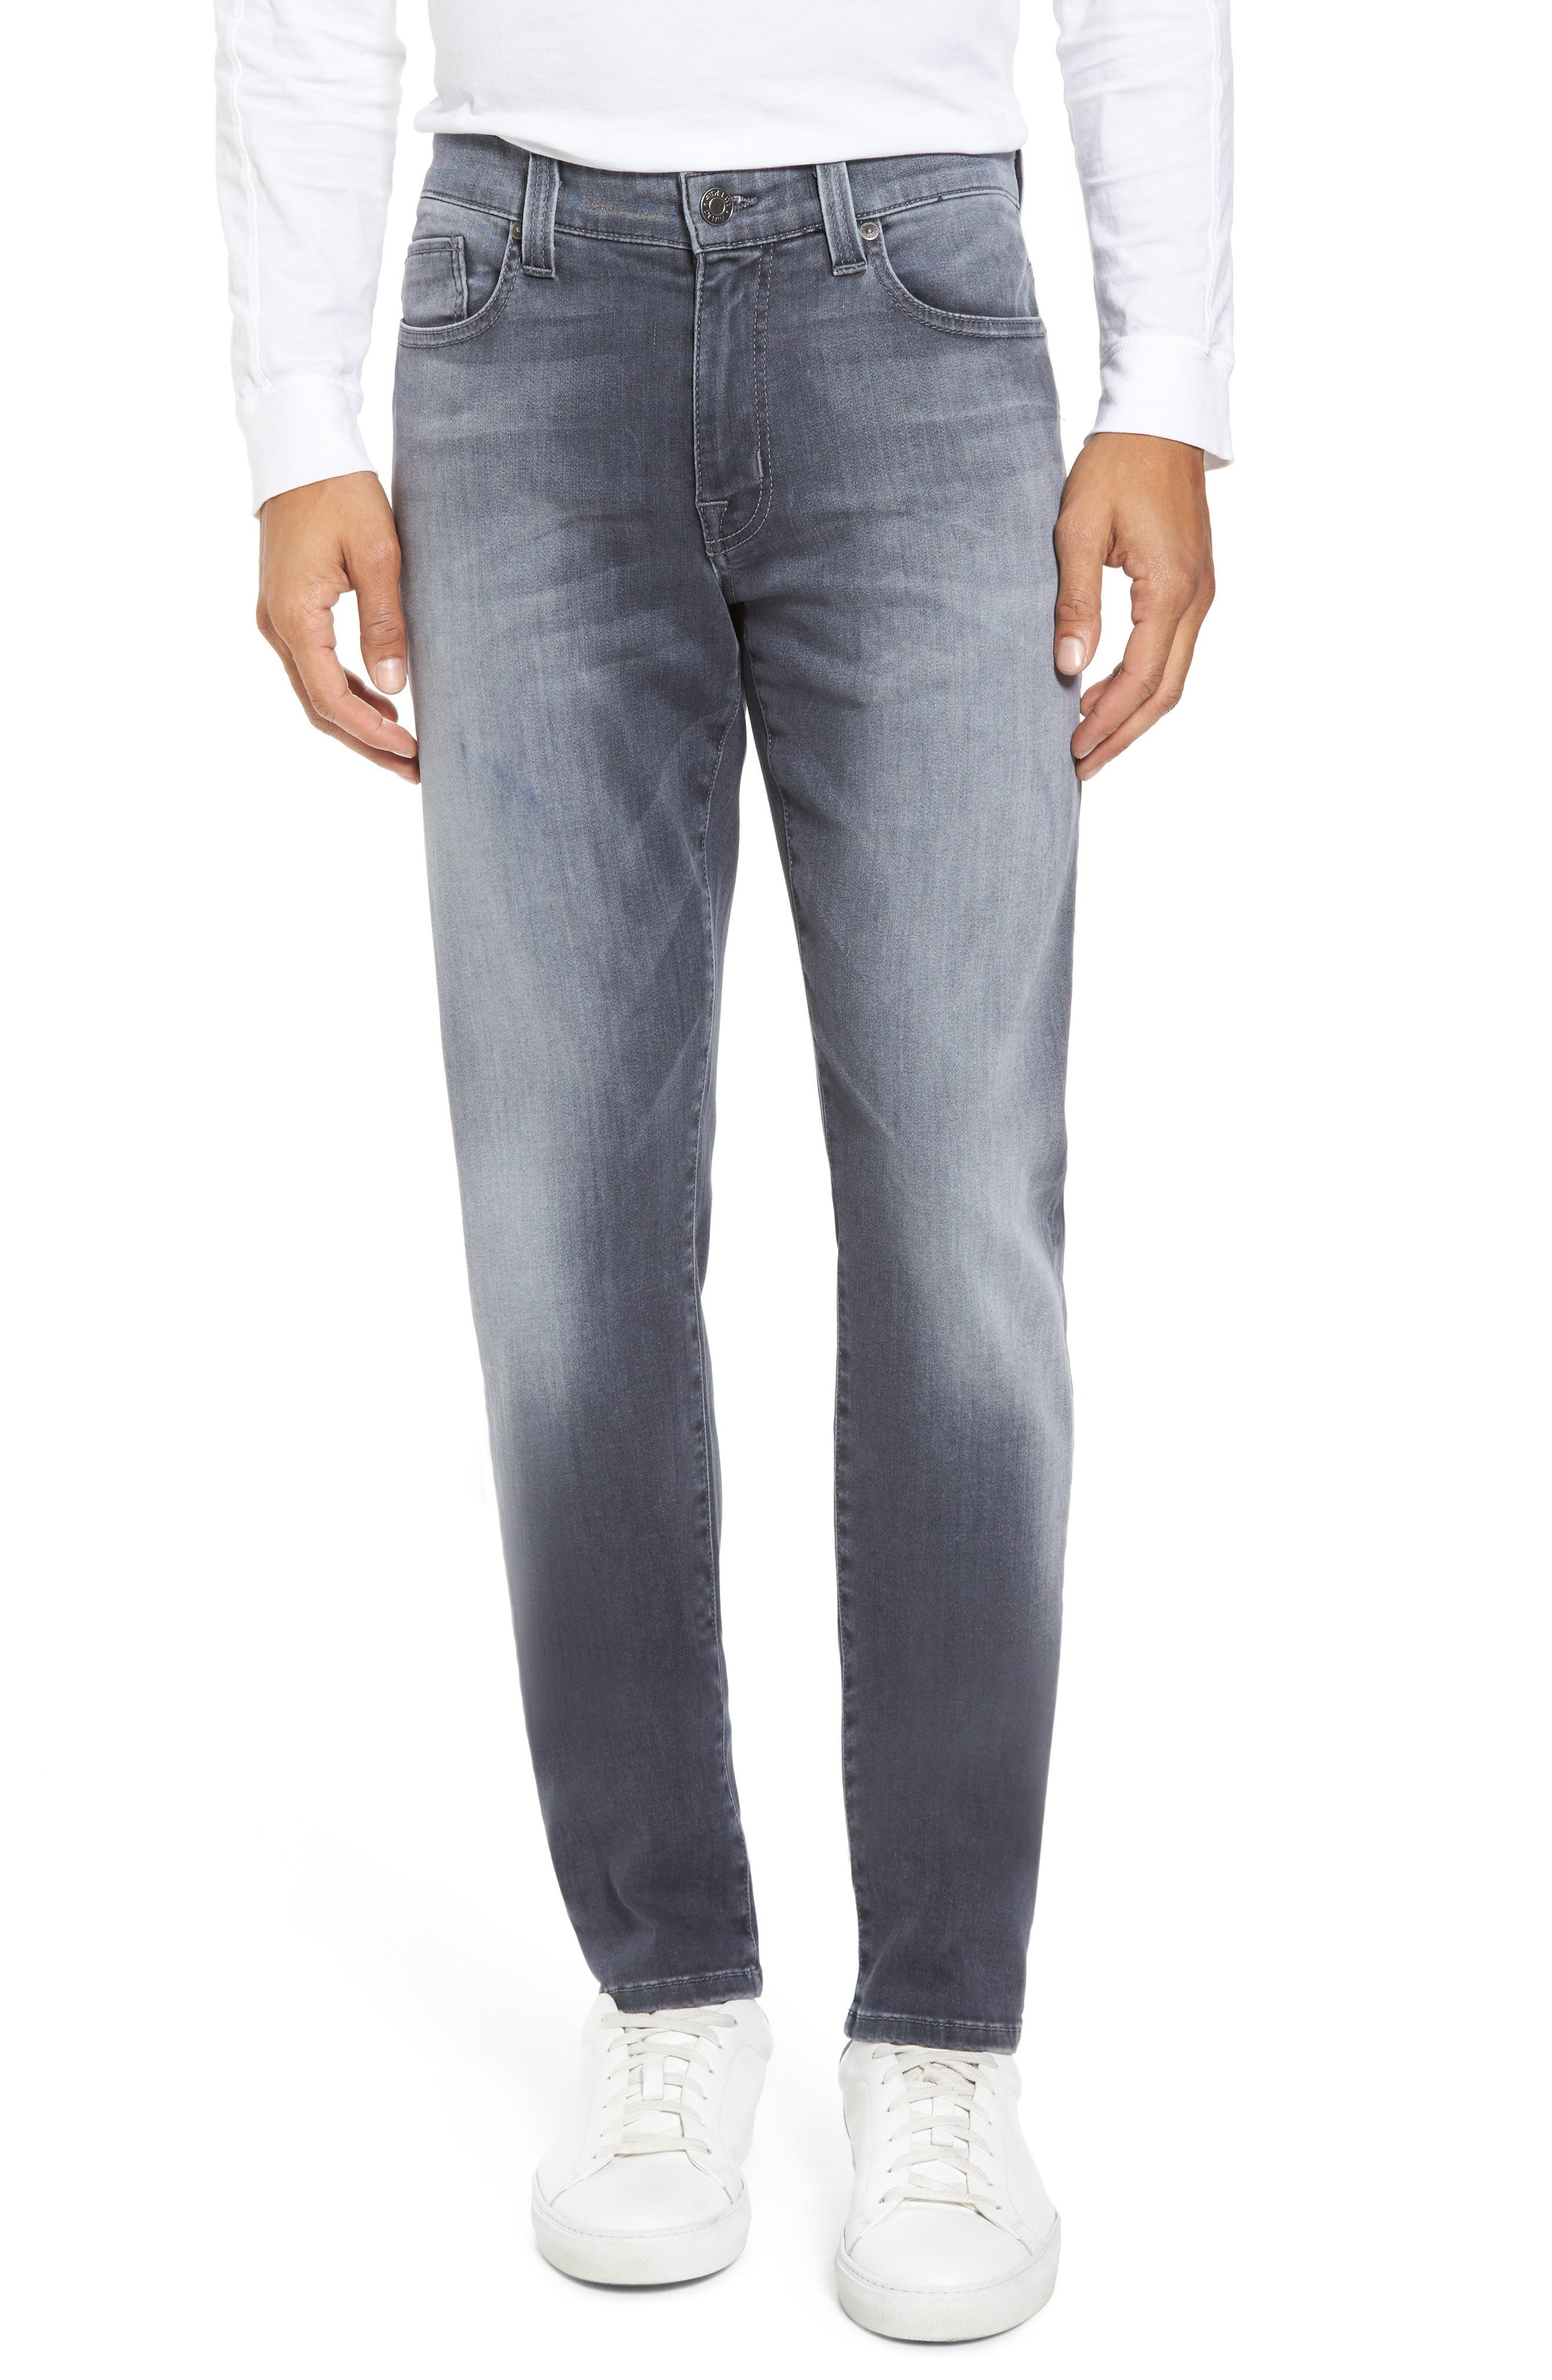 Alternate Image 1 Selected - Fidelity Denim Torino Slim Fit Jeans (Fade To Grey)